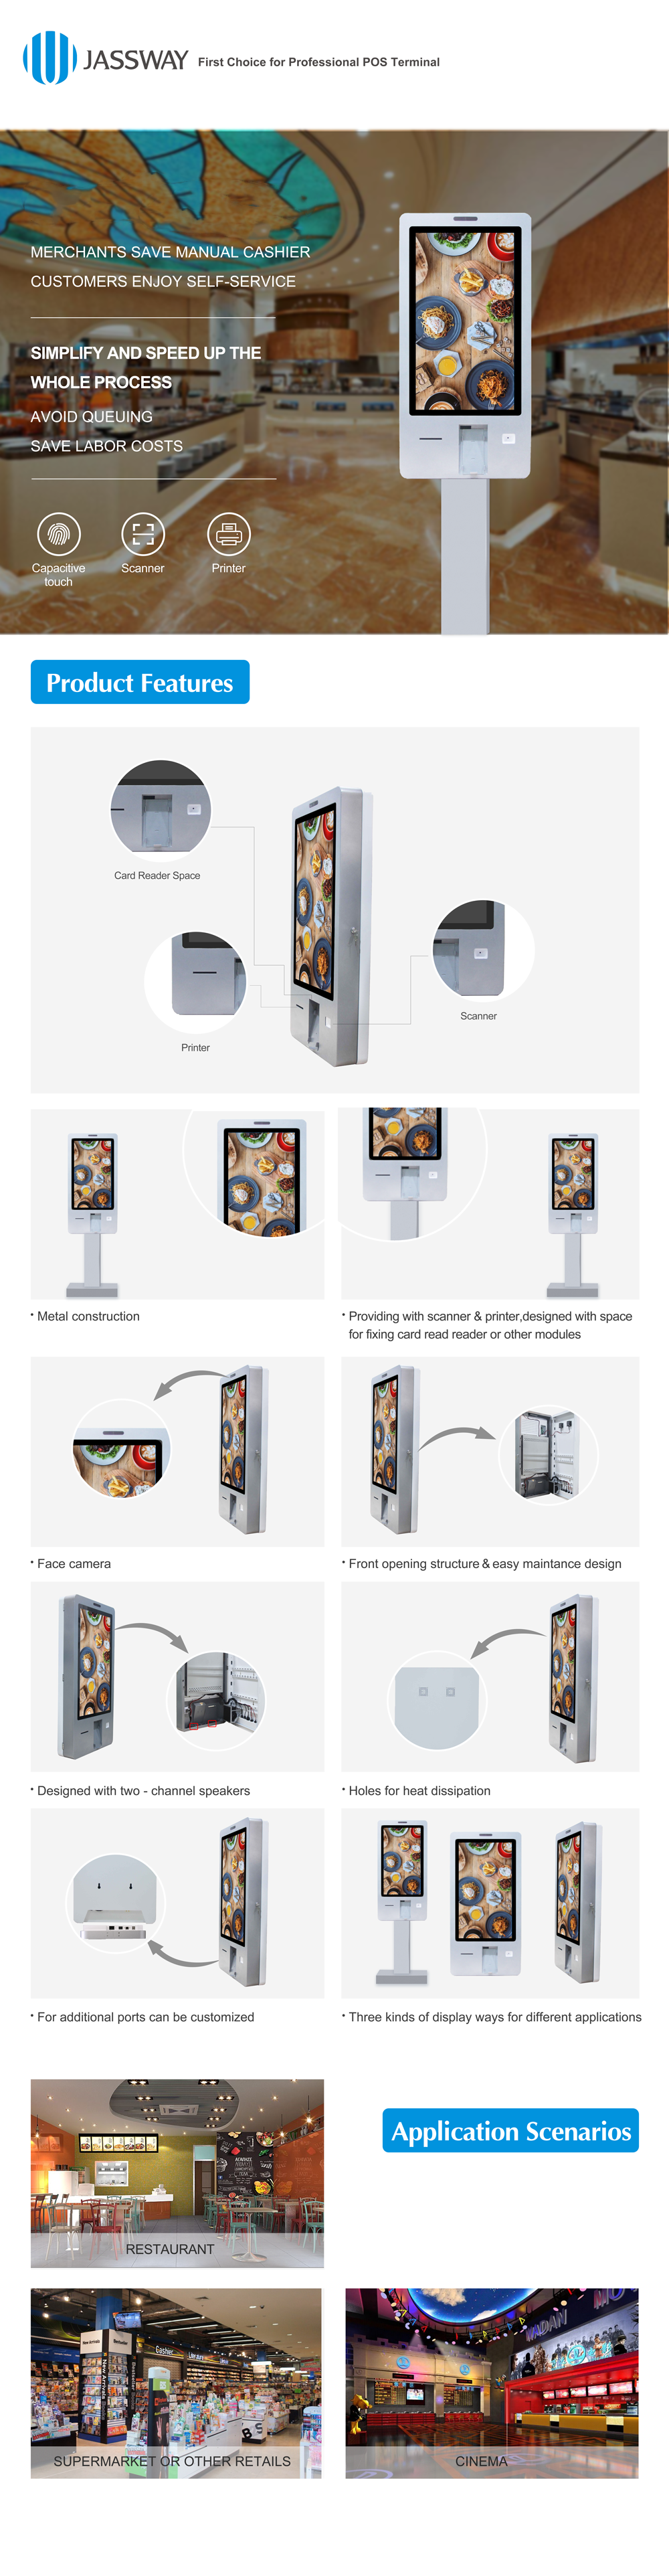 21.5 inch touch screen kiosk  for retails payment kiosk   self-order machine